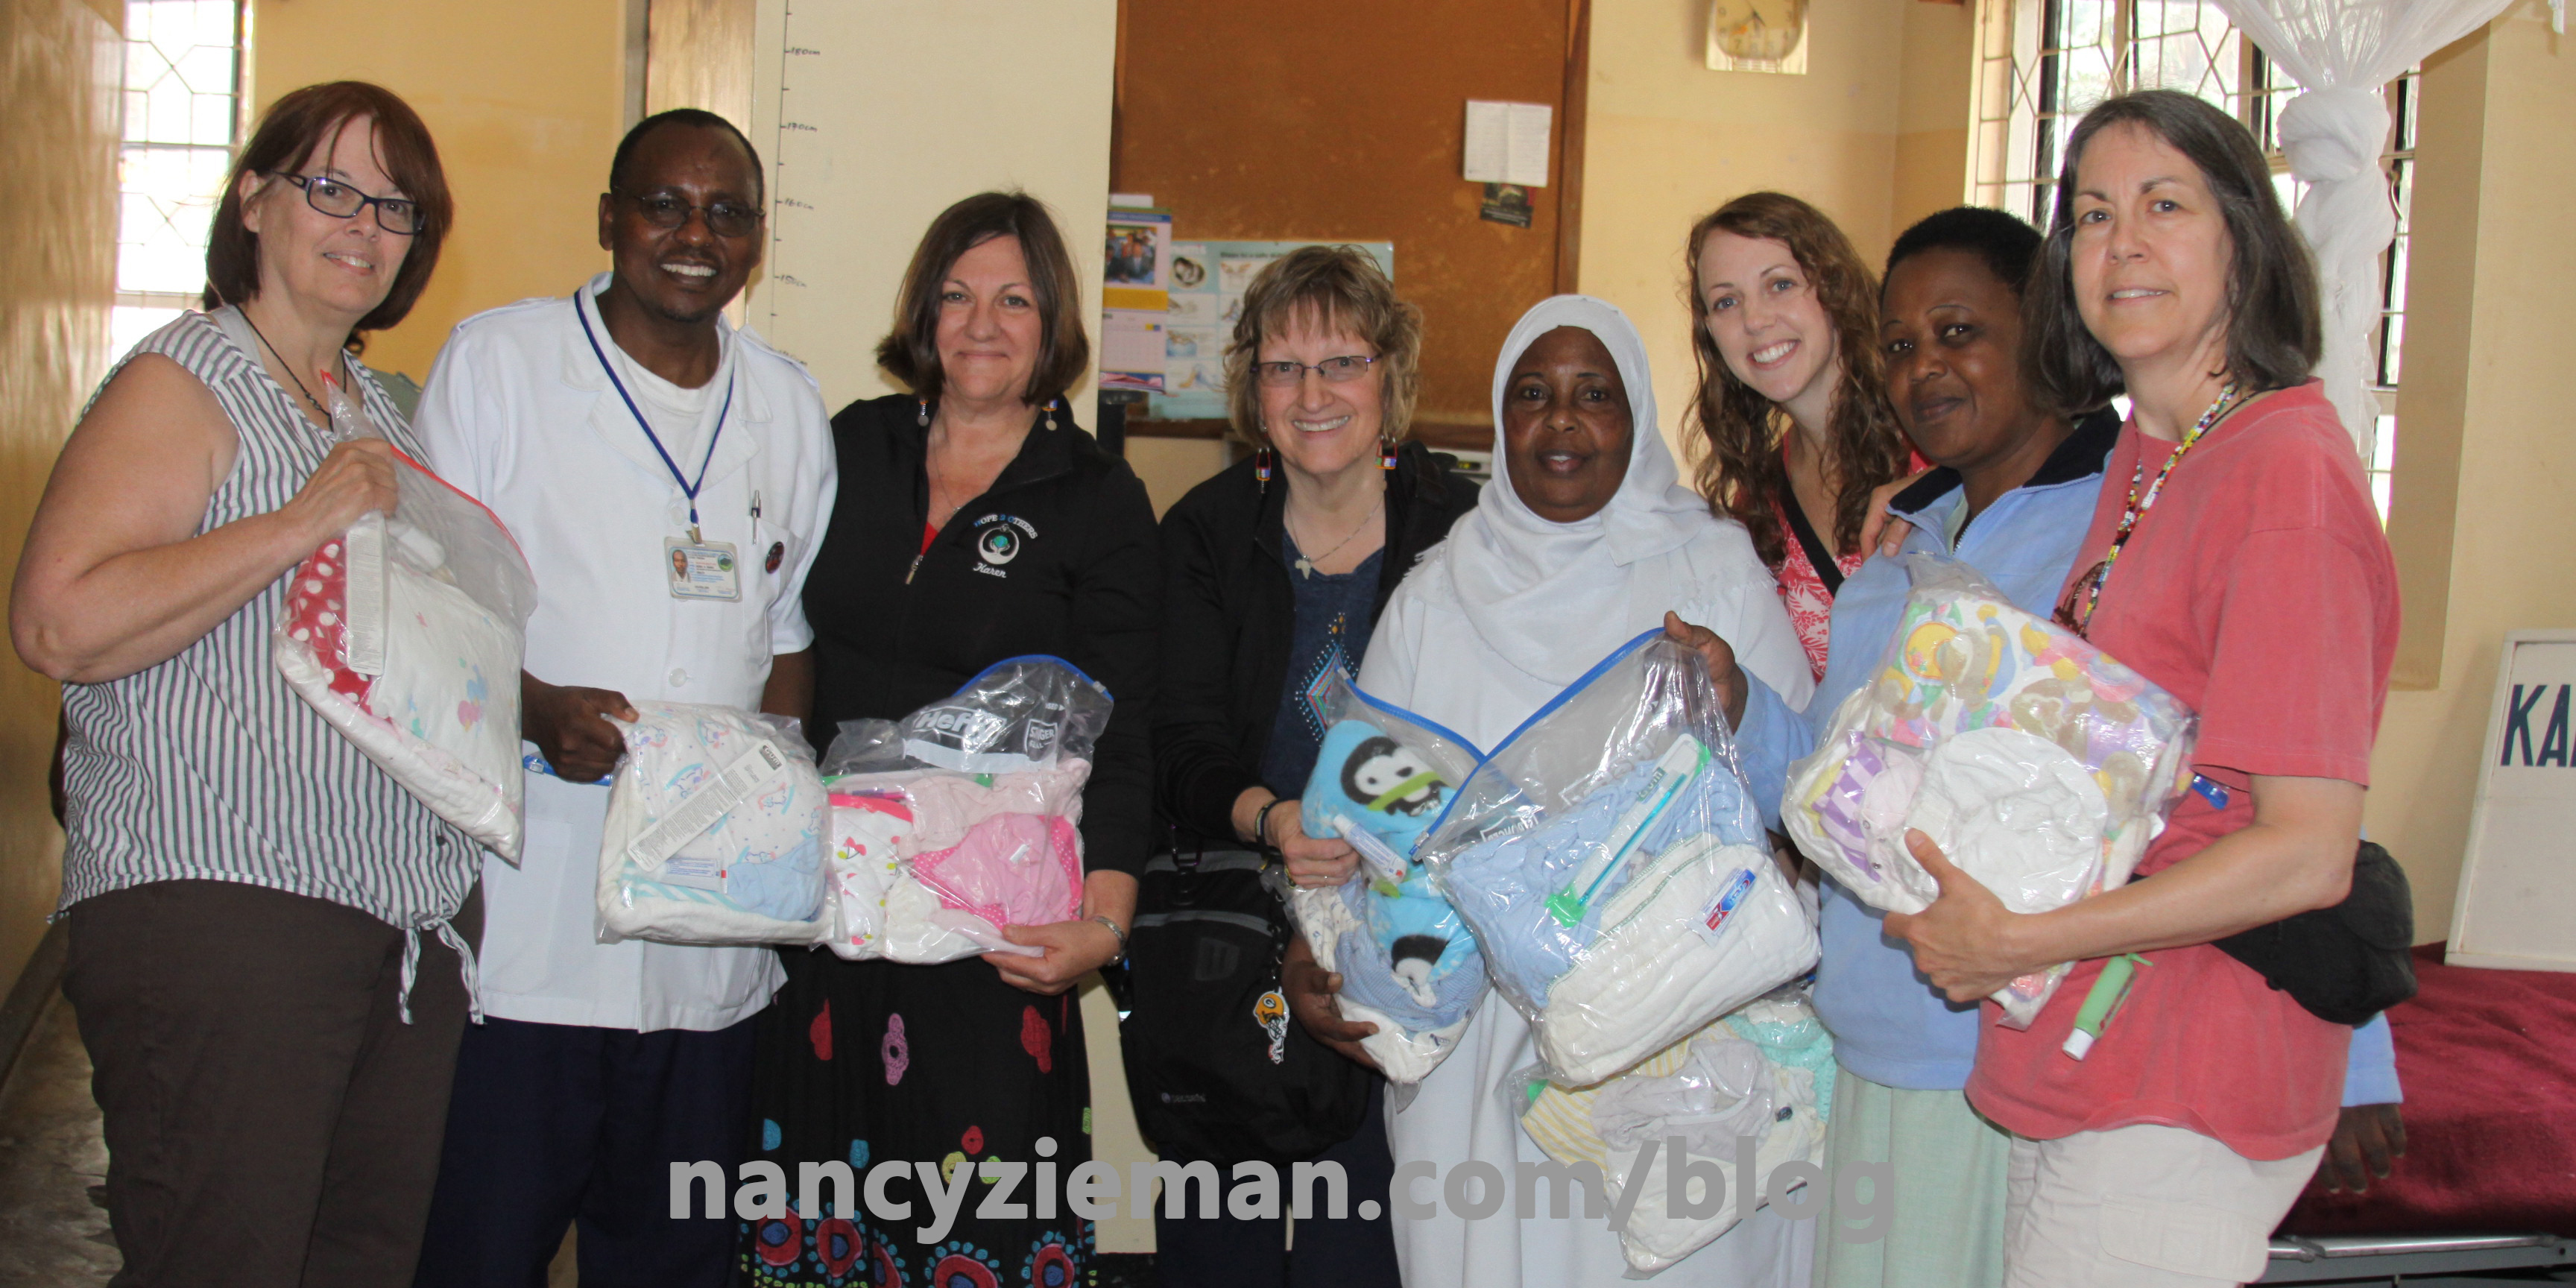 Bringing Hope 2 Others: Blankets Needed | Hat and Blanket Drive | Nancy's Corner | Sewing With Nancy | Nancy Zieman